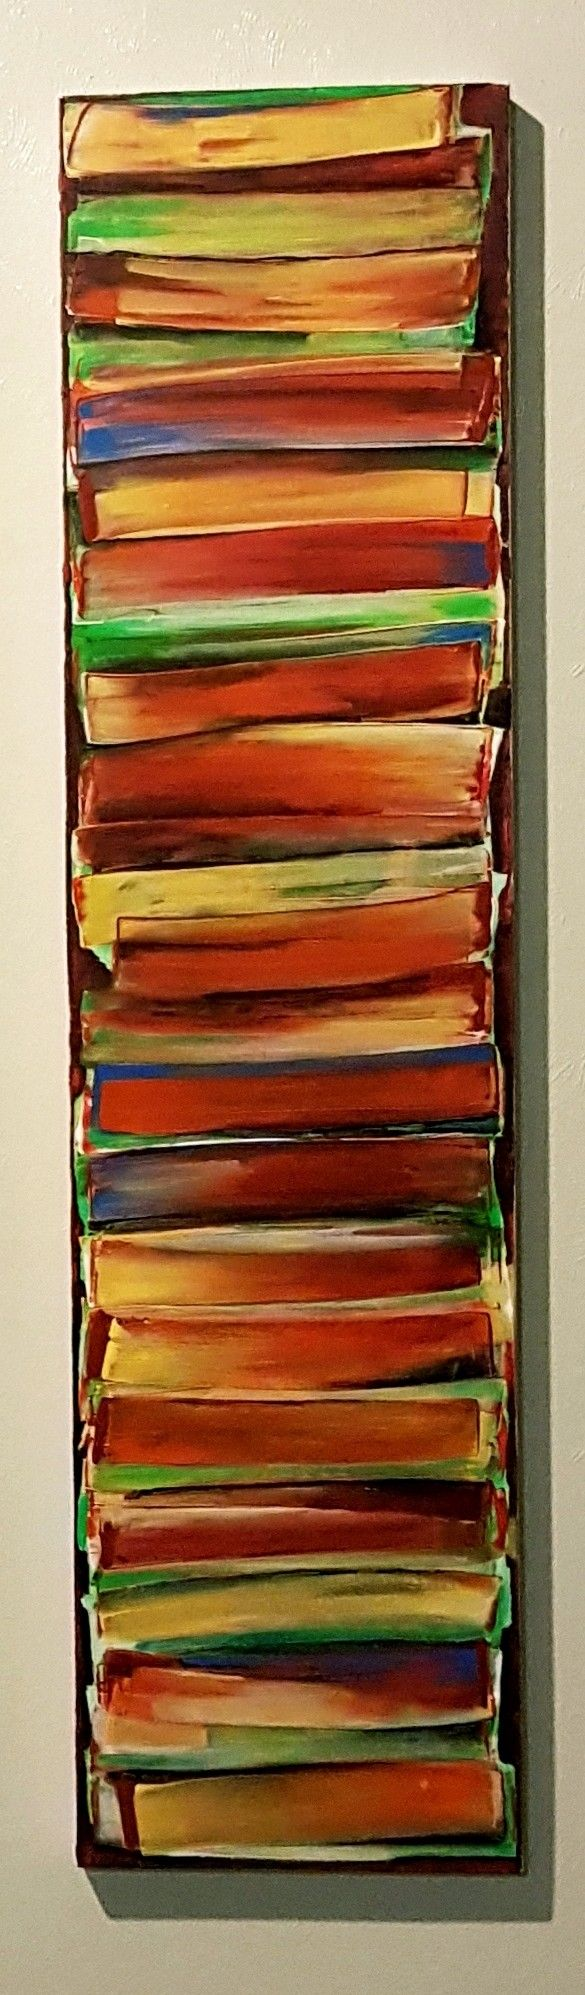 Acrylic#ink#canvas#painting#strata